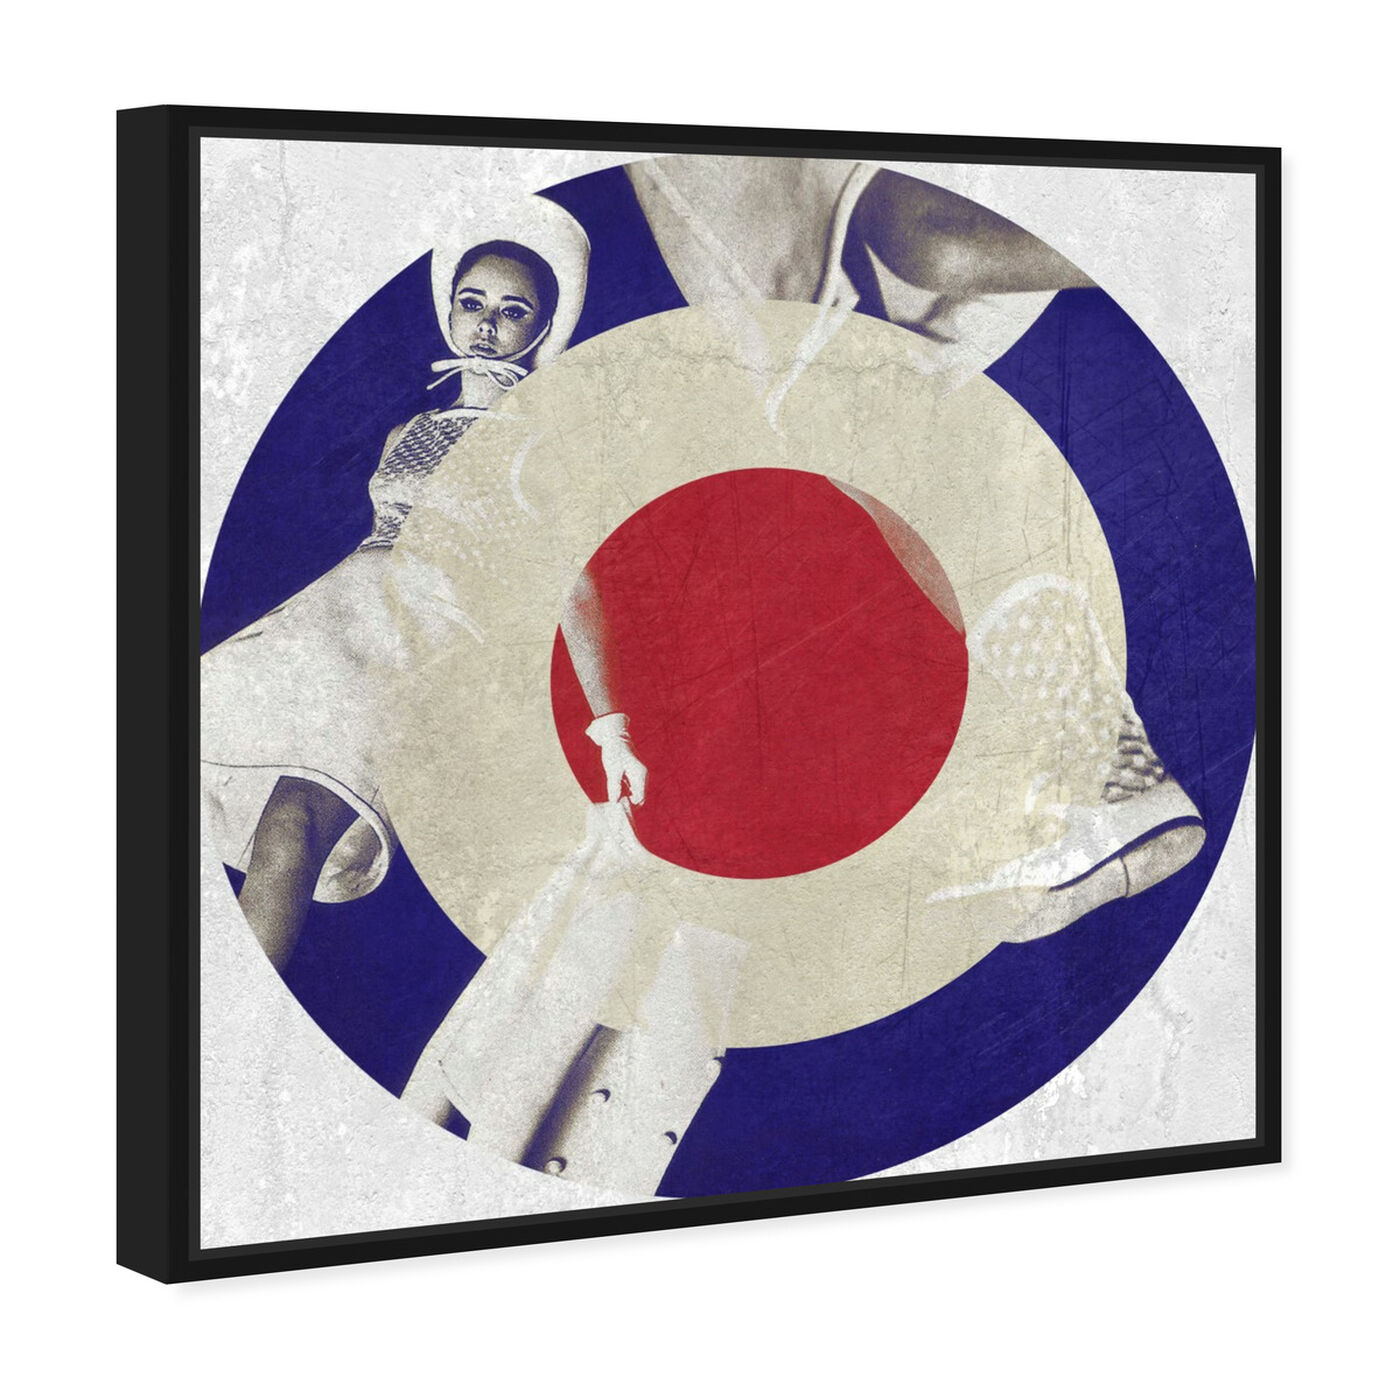 Angled view of Mod Dance featuring music and dance and vinyl records art.